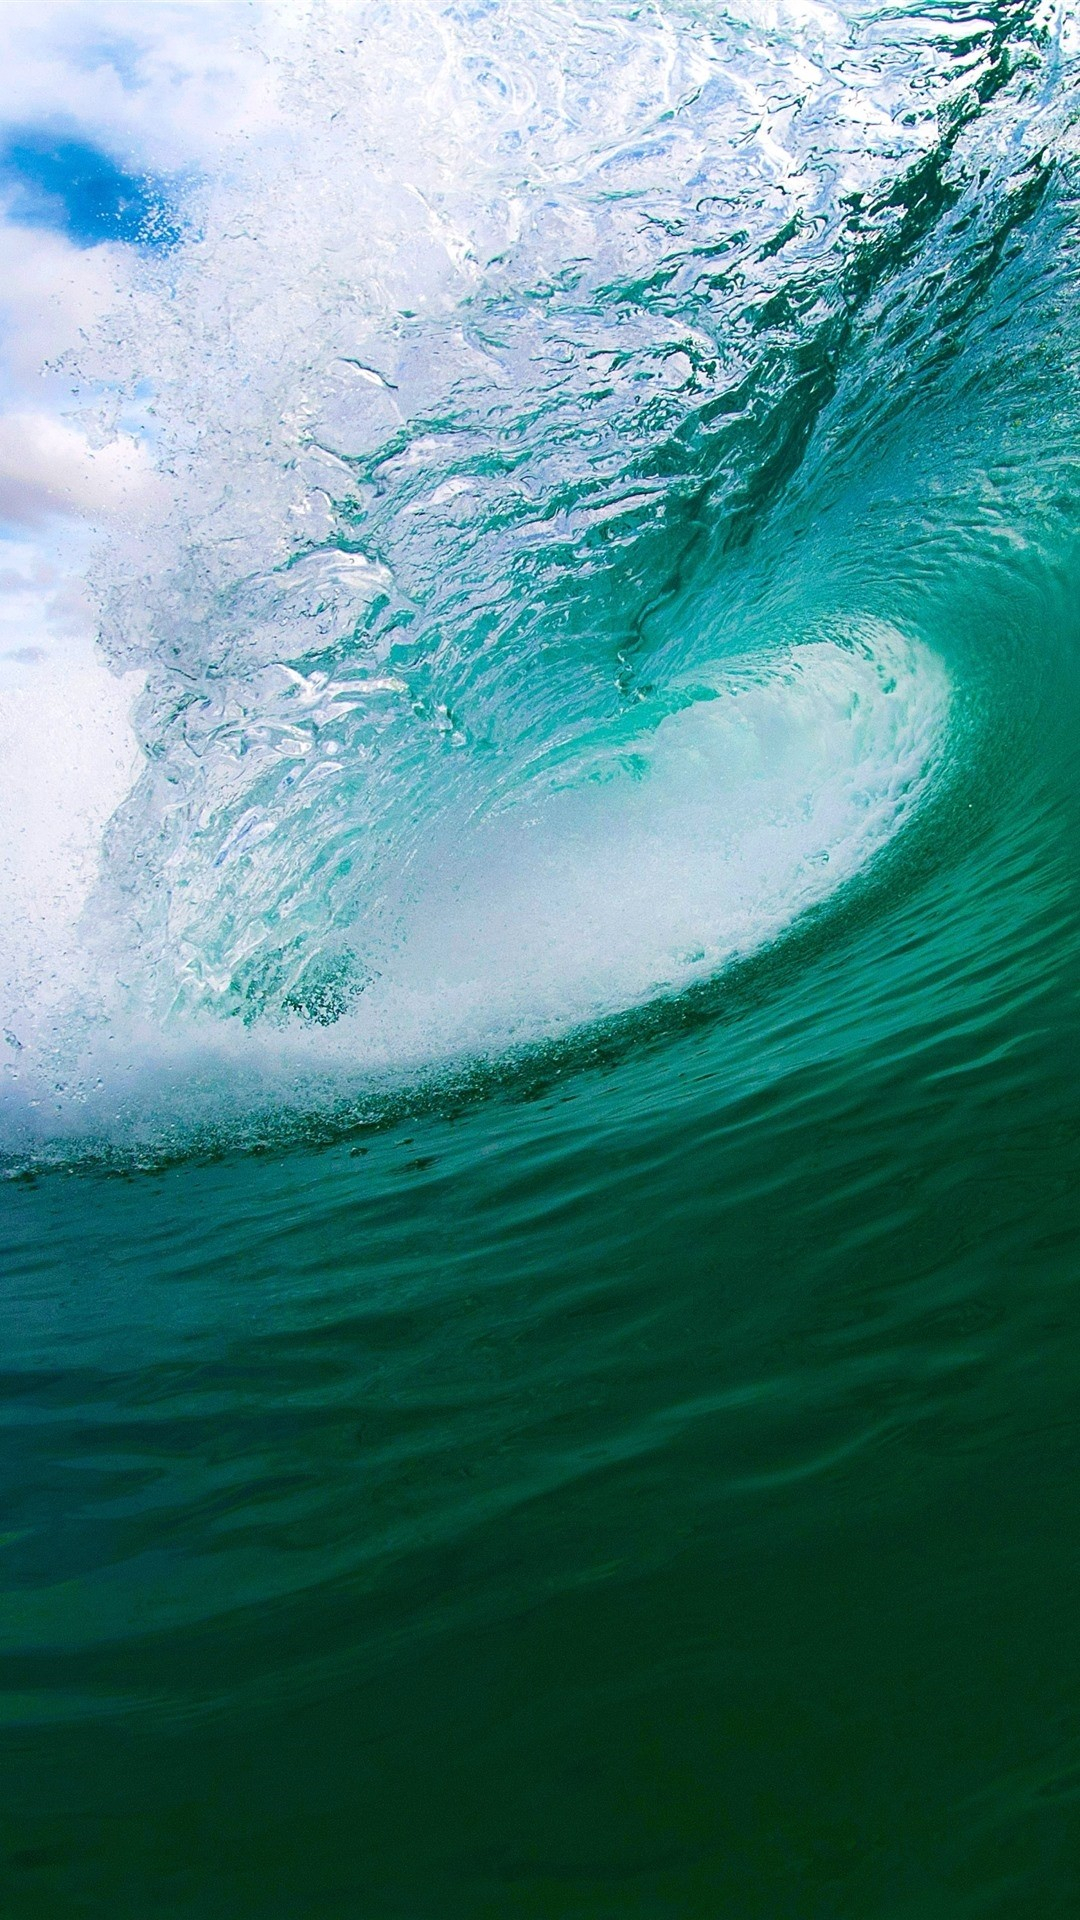 Wave wallpaper for iPhone